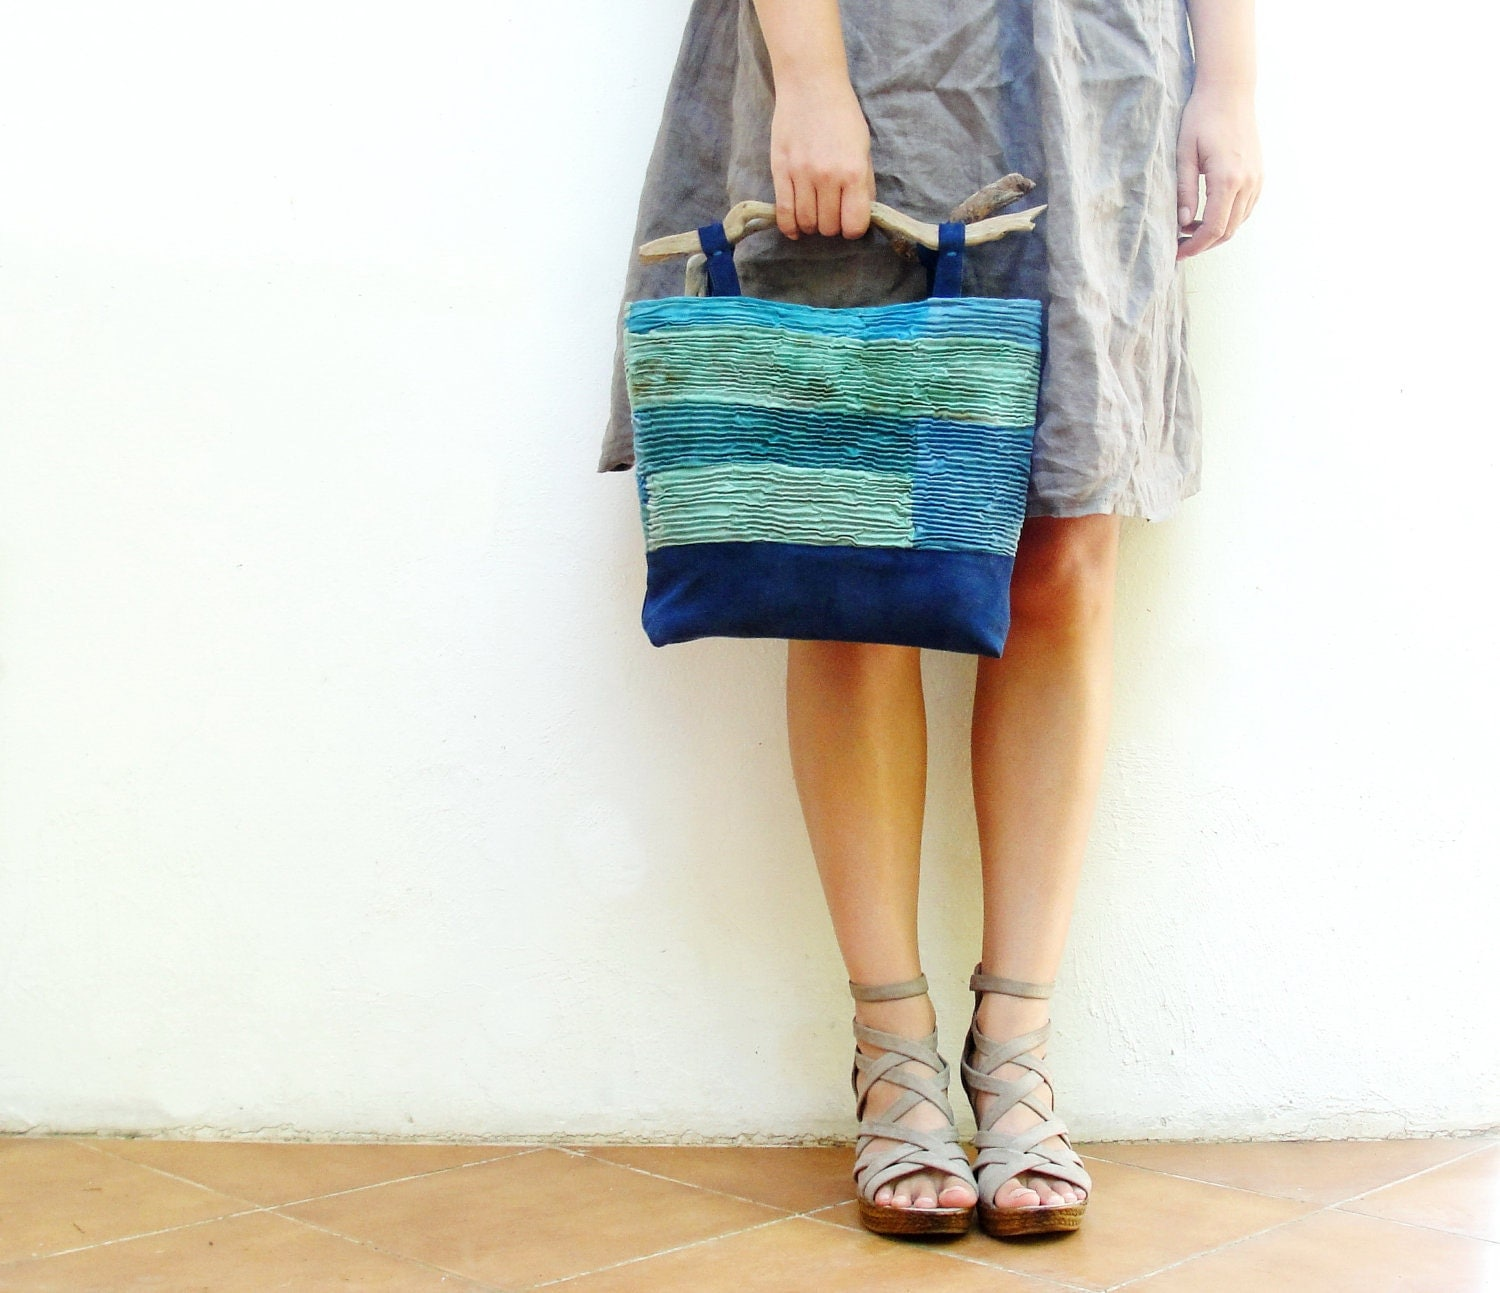 Ocean Breeze Bag - Smocked Hand Dyed Linen with Driftwood Handles and Leather details - StarBags